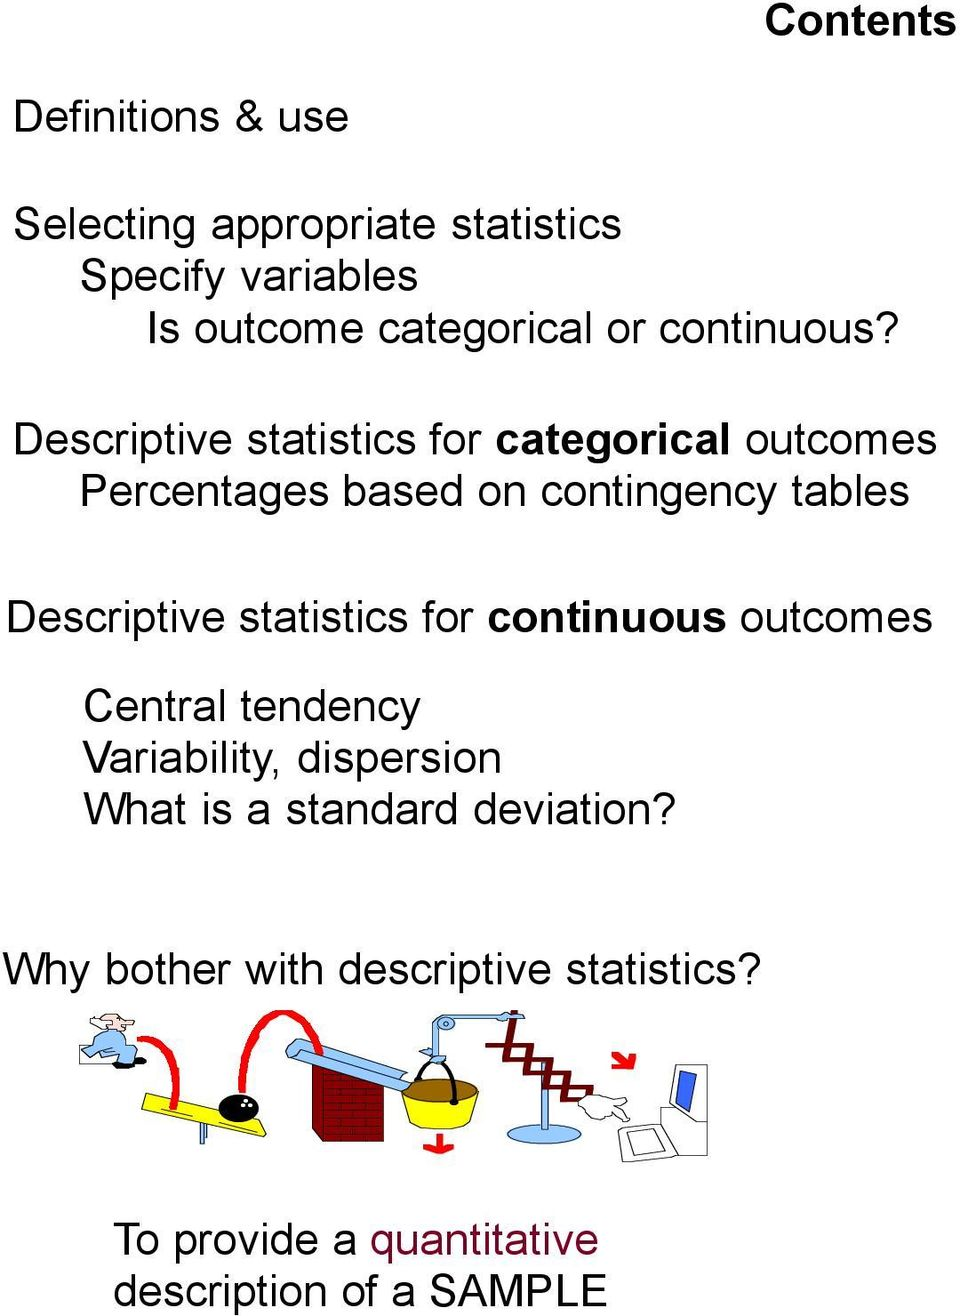 Descriptive statistics for categorical outcomes Percentages based on contingency tables Descriptive